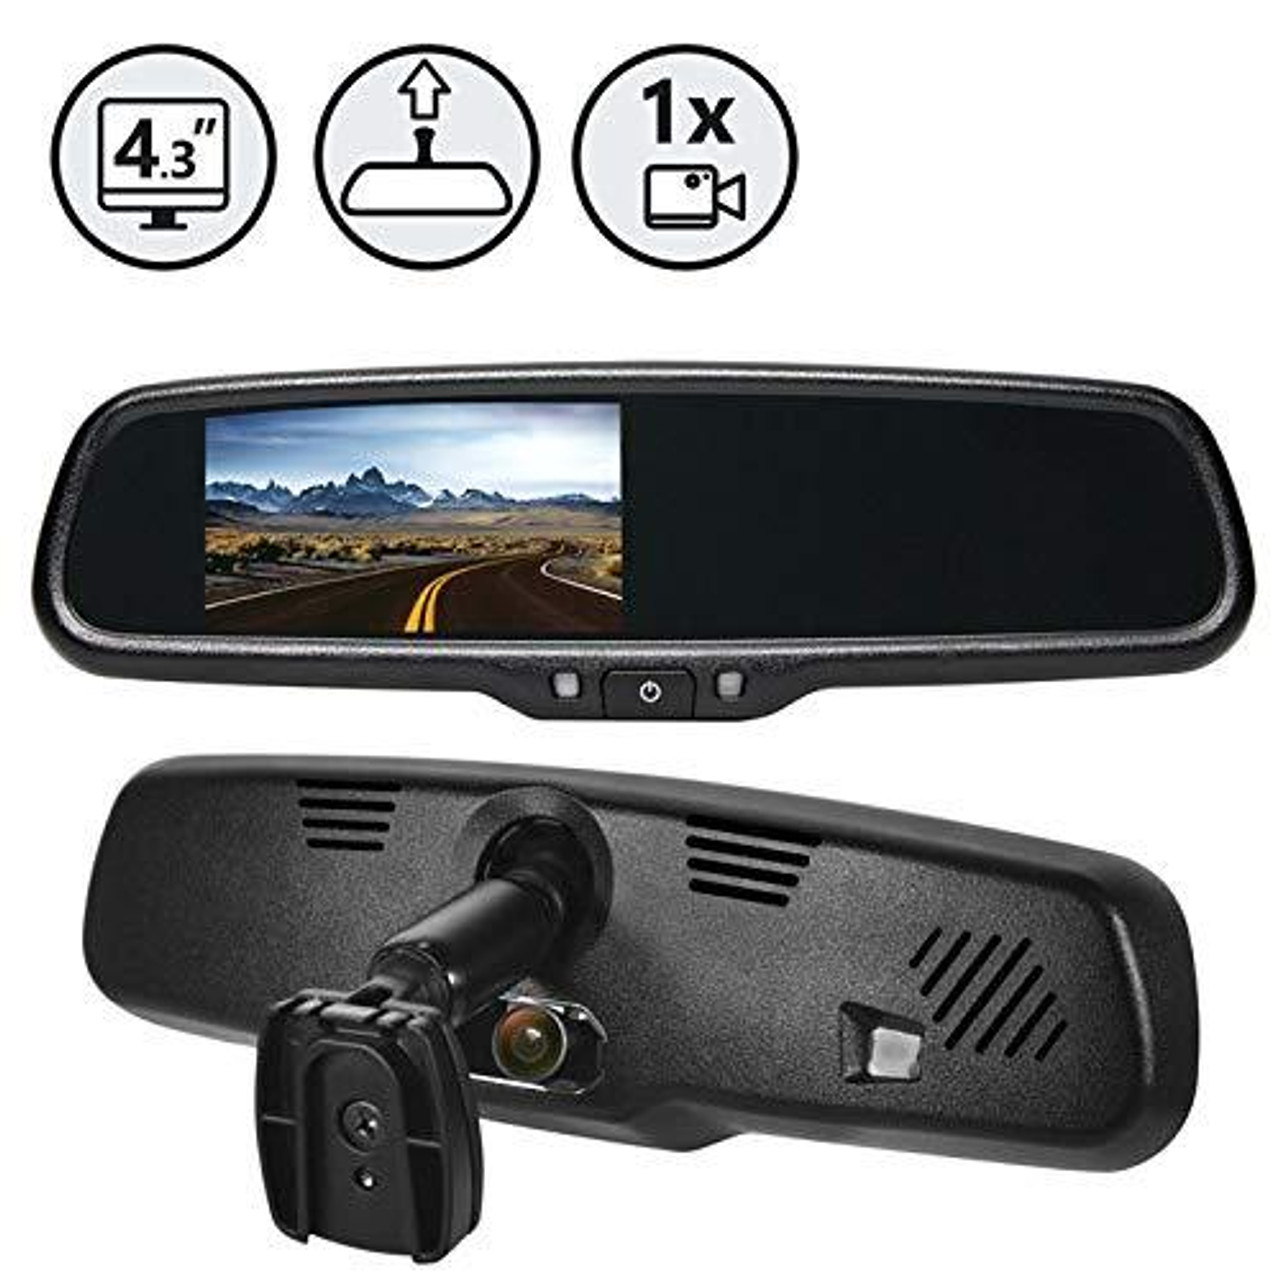 G-Series Rear View Replacement Mirror Monitor with Built-in Hidden Dash Camera